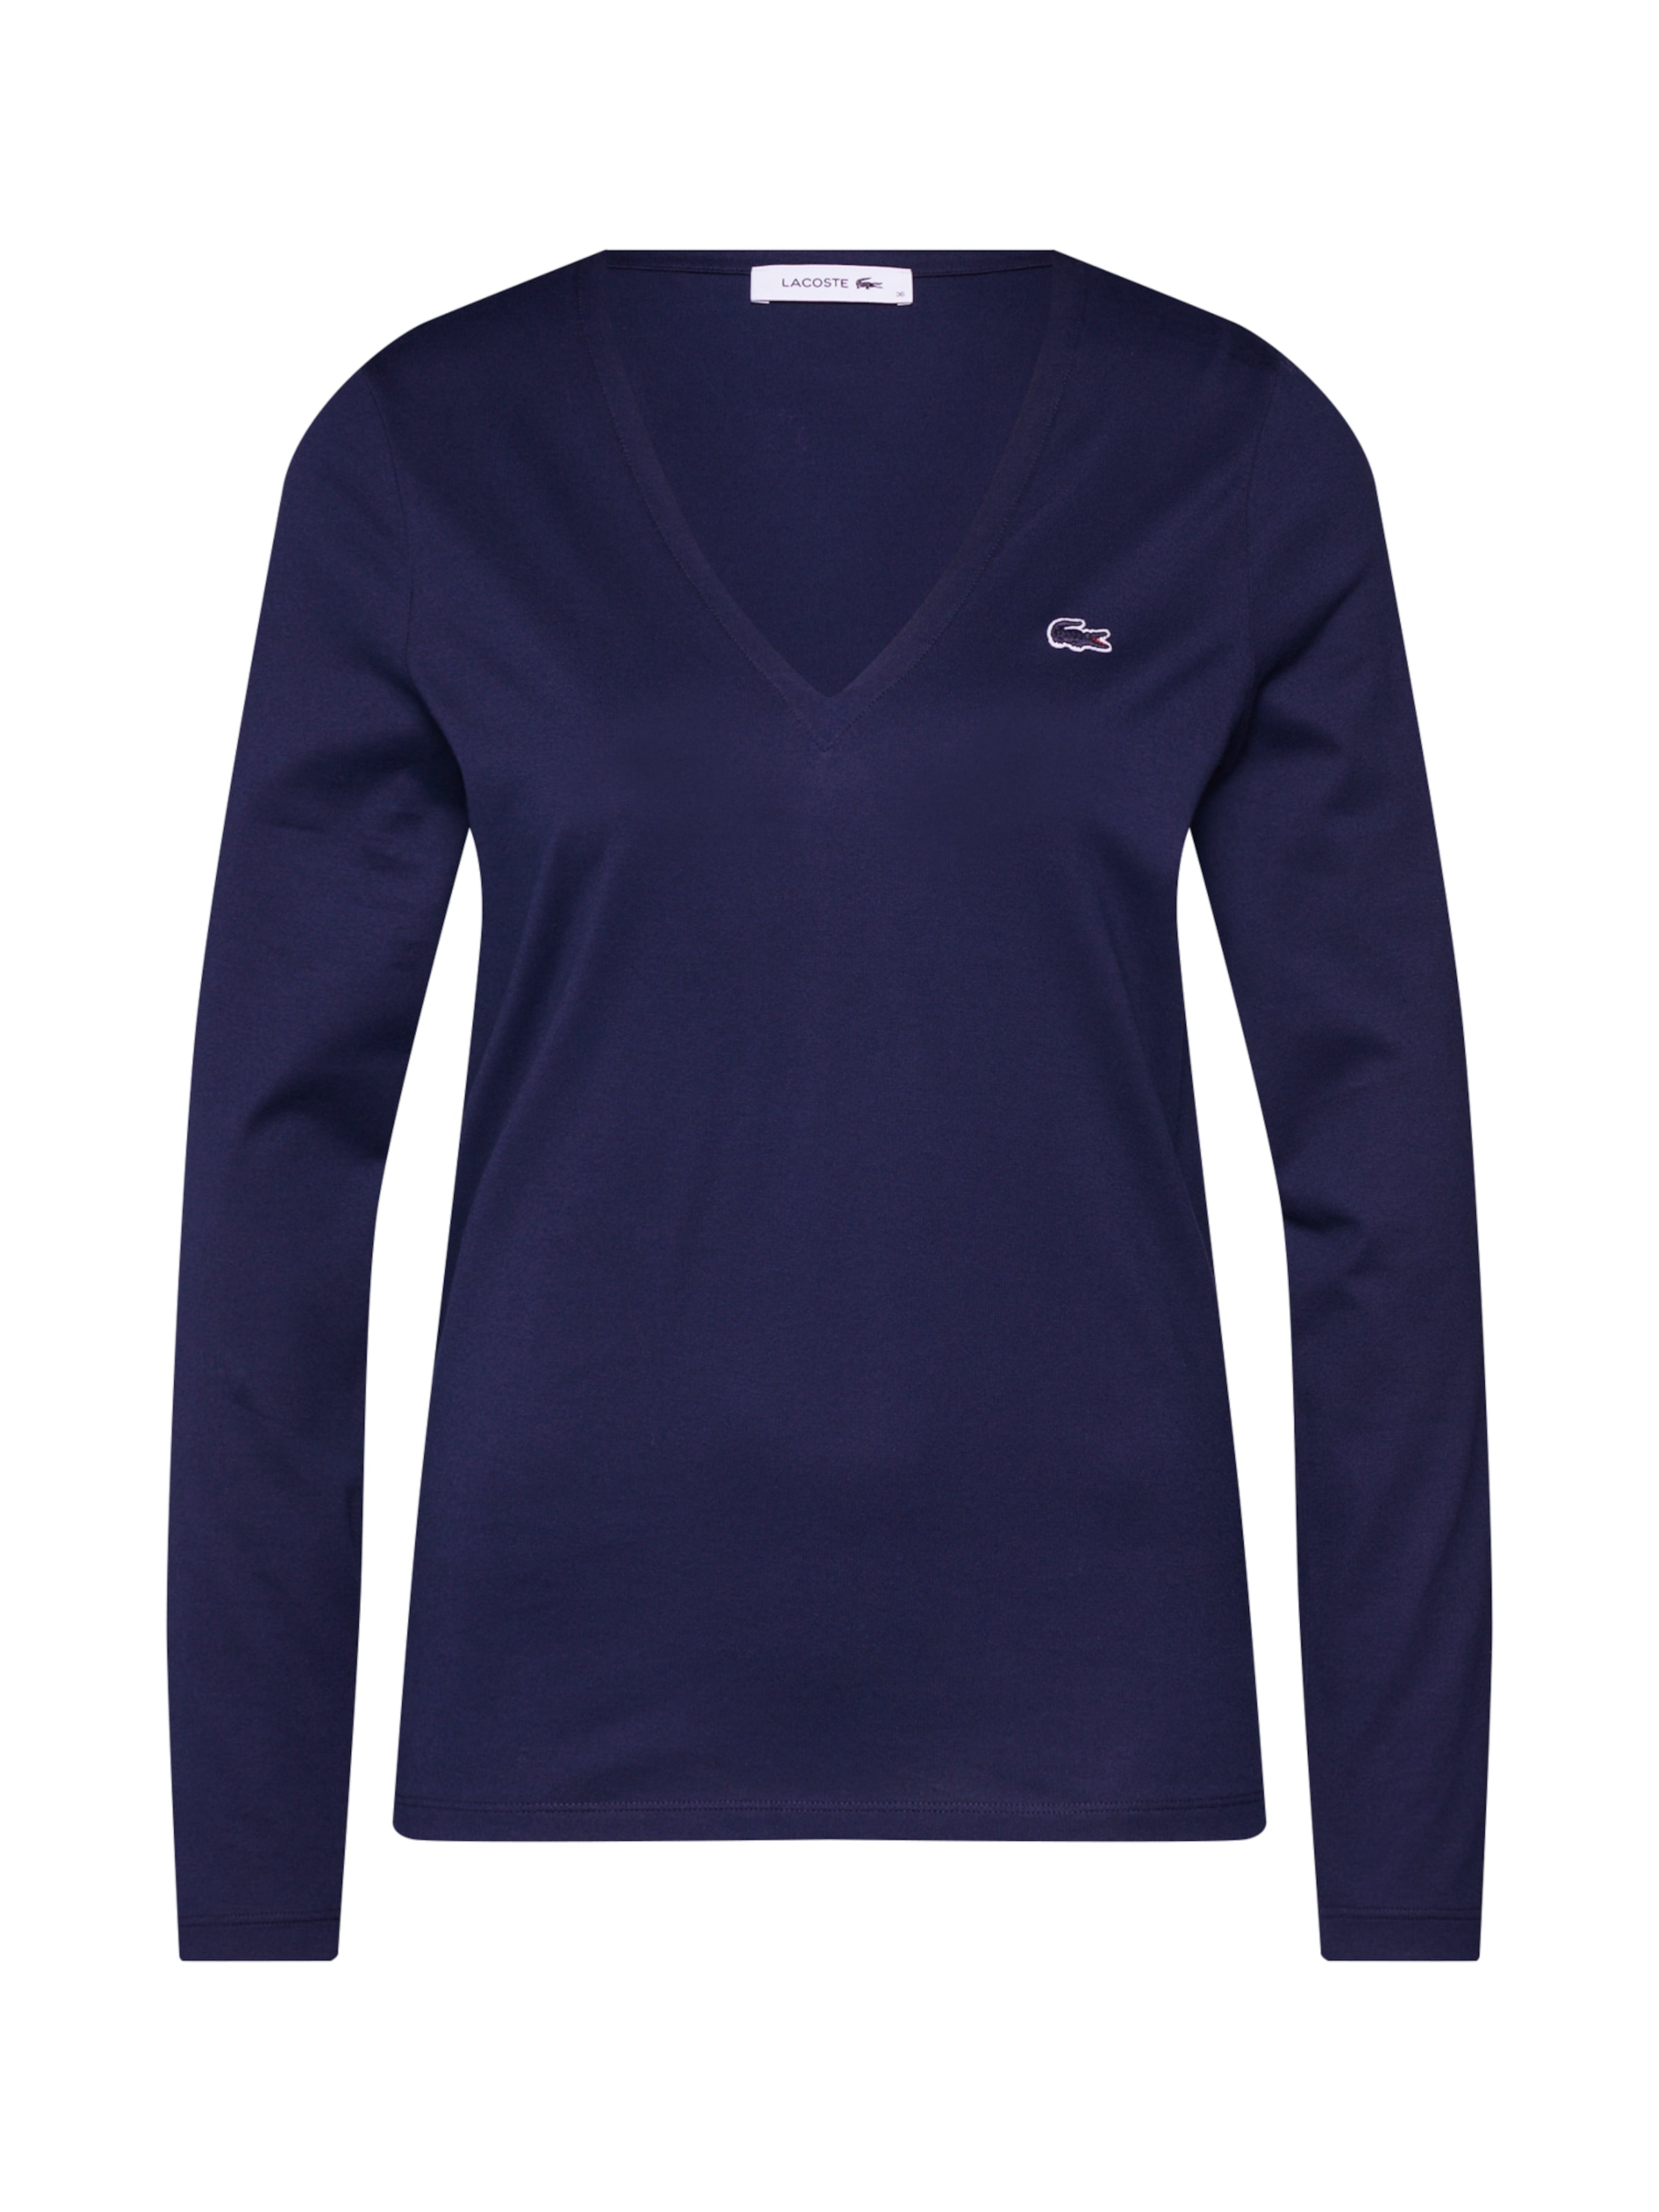 Lacoste Marine shirt' In 'tee Shirt mN8vnw0